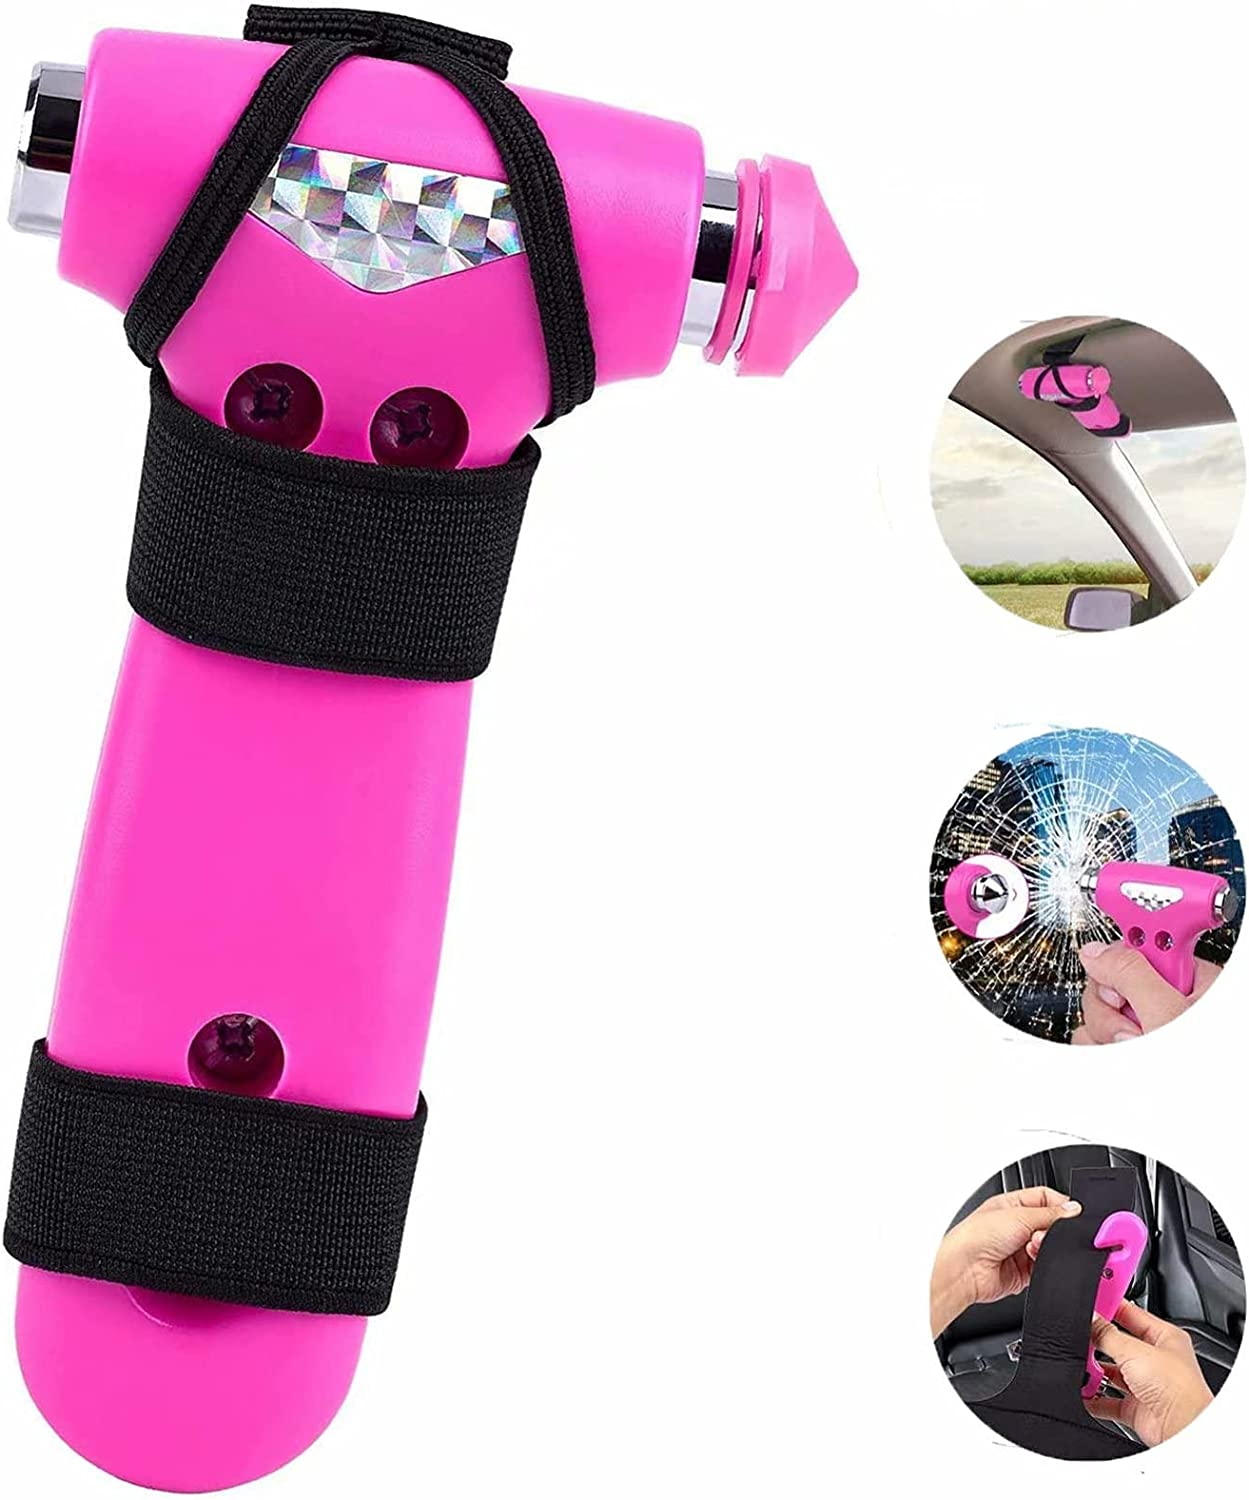 Automotive Safety Hammer Vehicle Seatbelt Max 49% OFF Some reservation Cutter Glas and Window